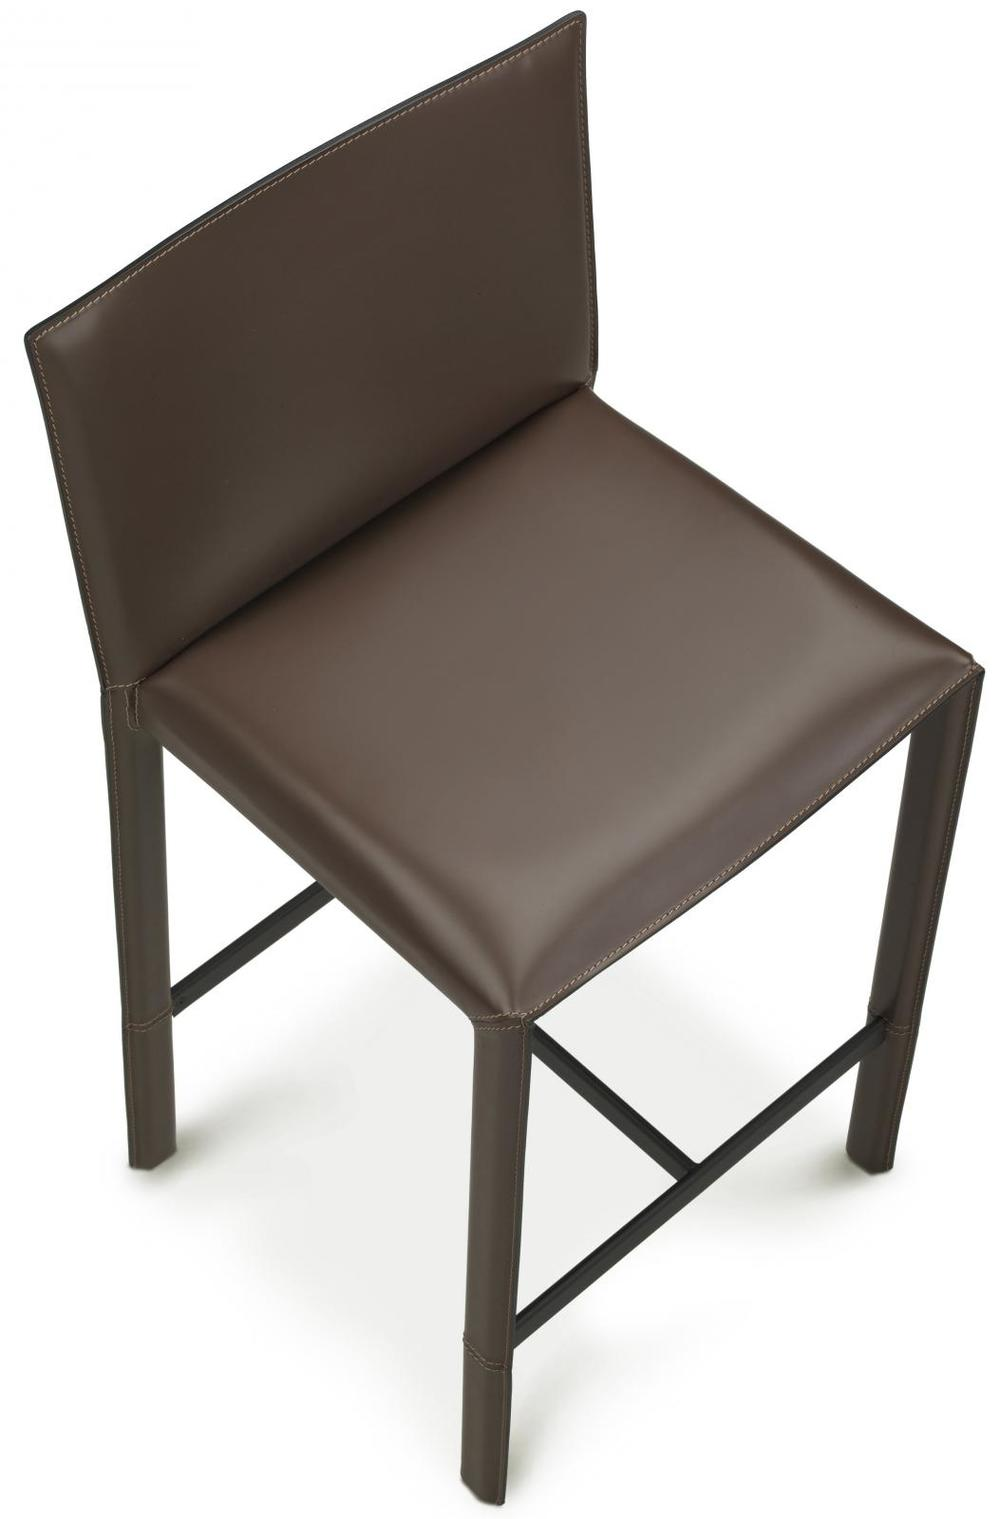 MODERN-LEATHER-STOOLS-ITALIAN-FURNITURE_G (28).jpg